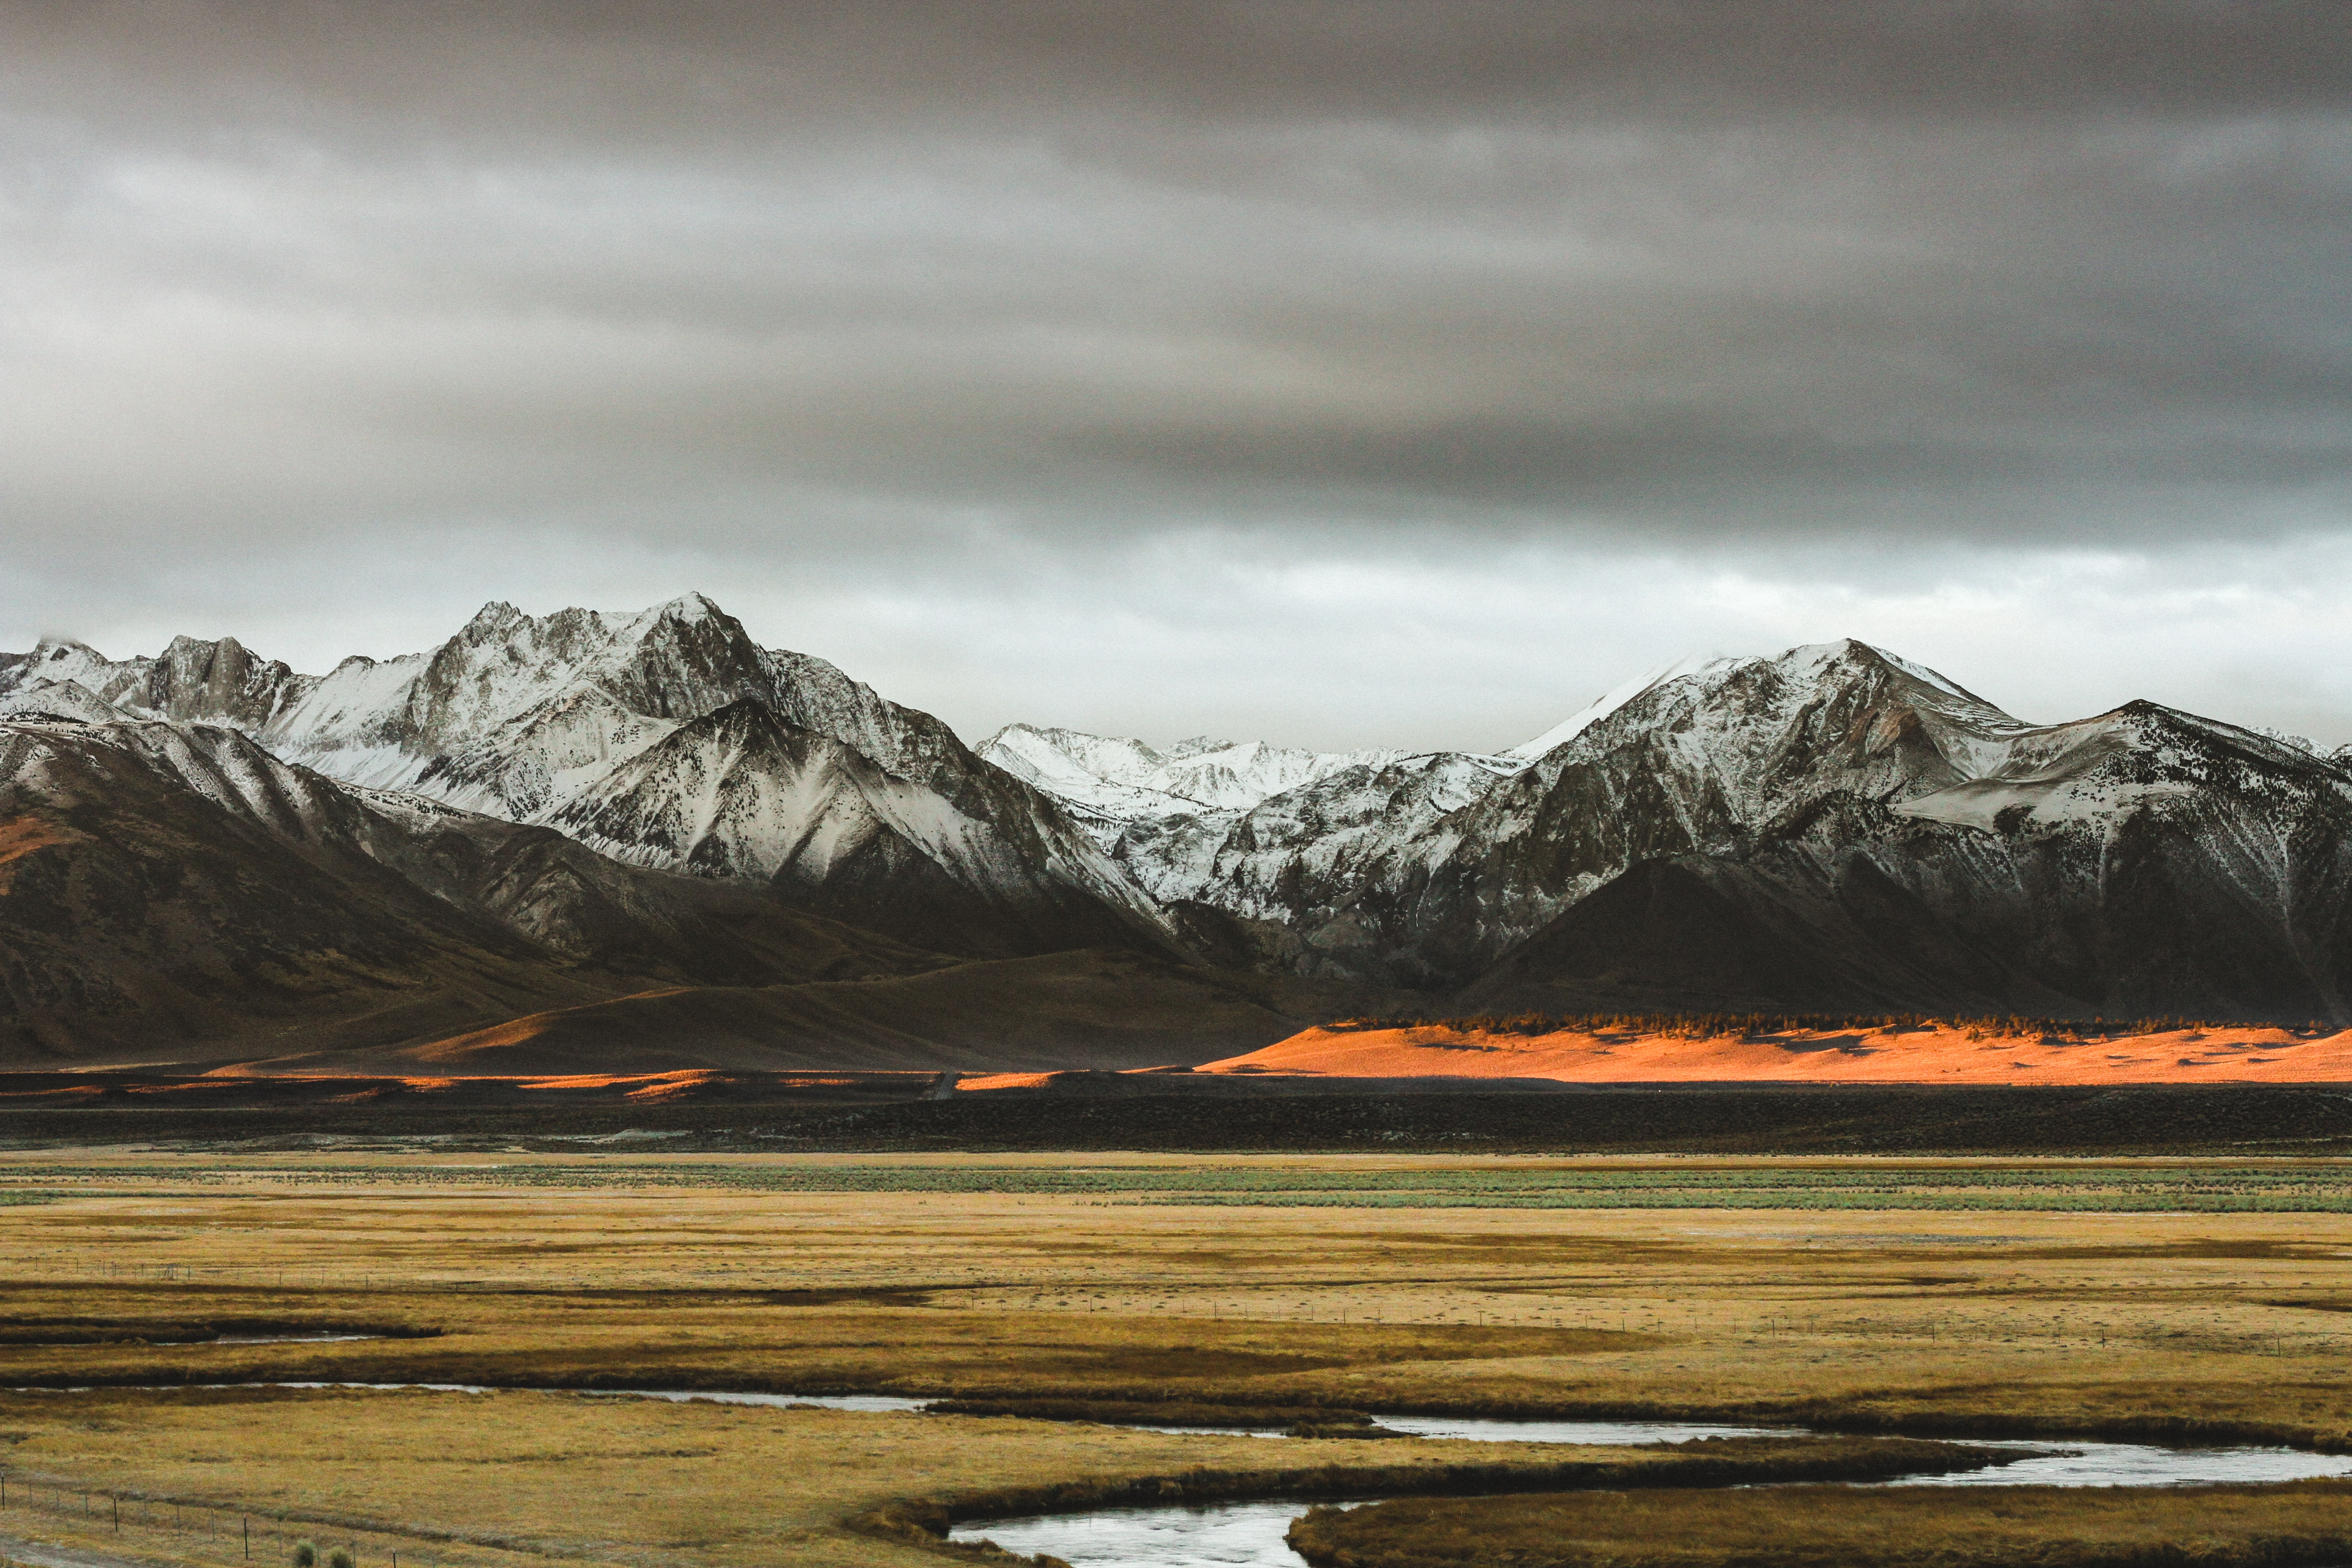 A stream flowing through the plains at the foot of a mountain range on a cloudy day